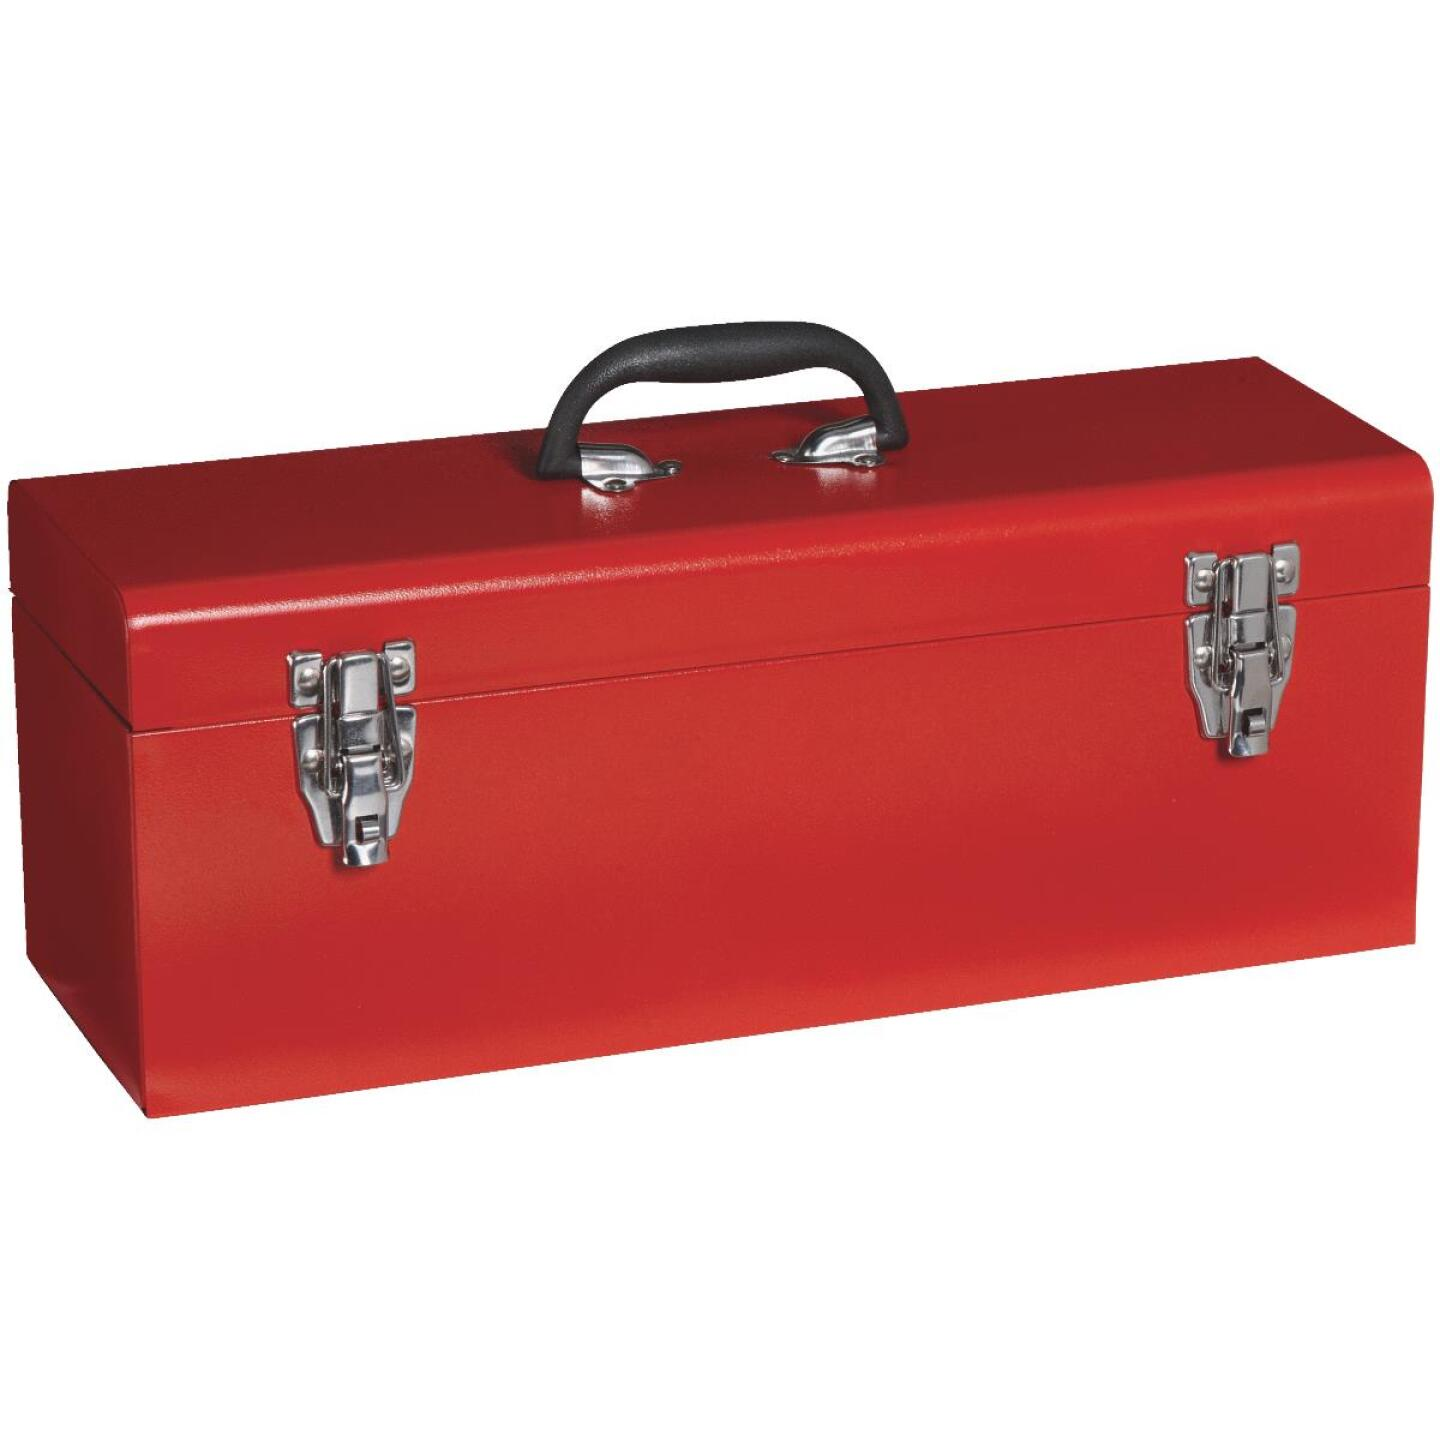 20 In. Red Steel Toolbox Image 2